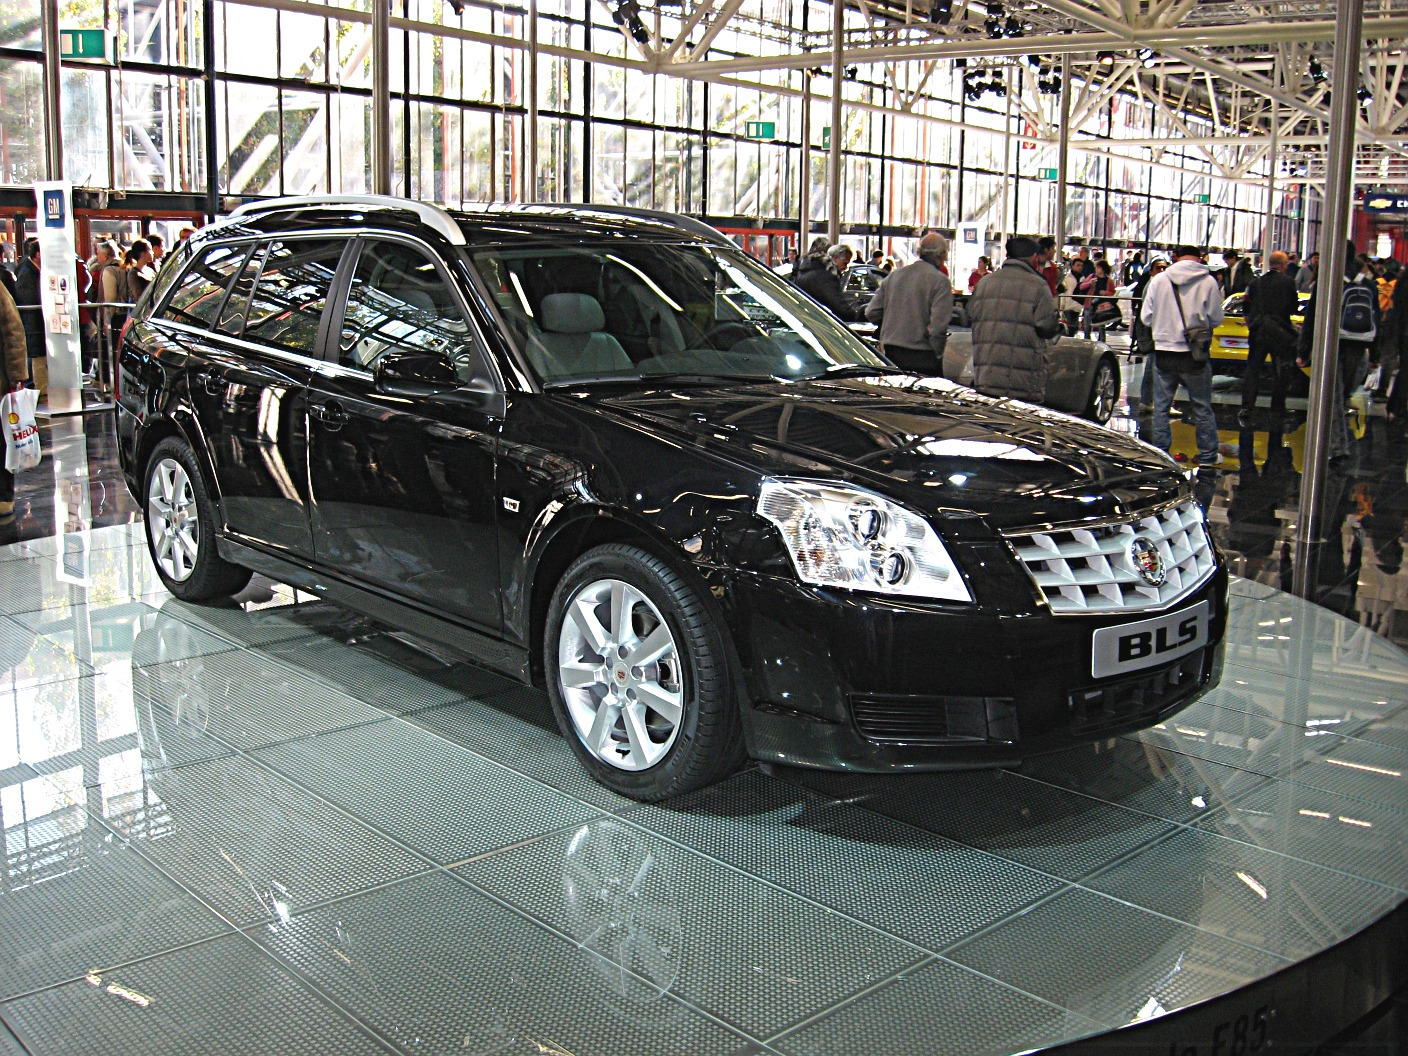 pictures of cadillac bls 2014 auto. Black Bedroom Furniture Sets. Home Design Ideas